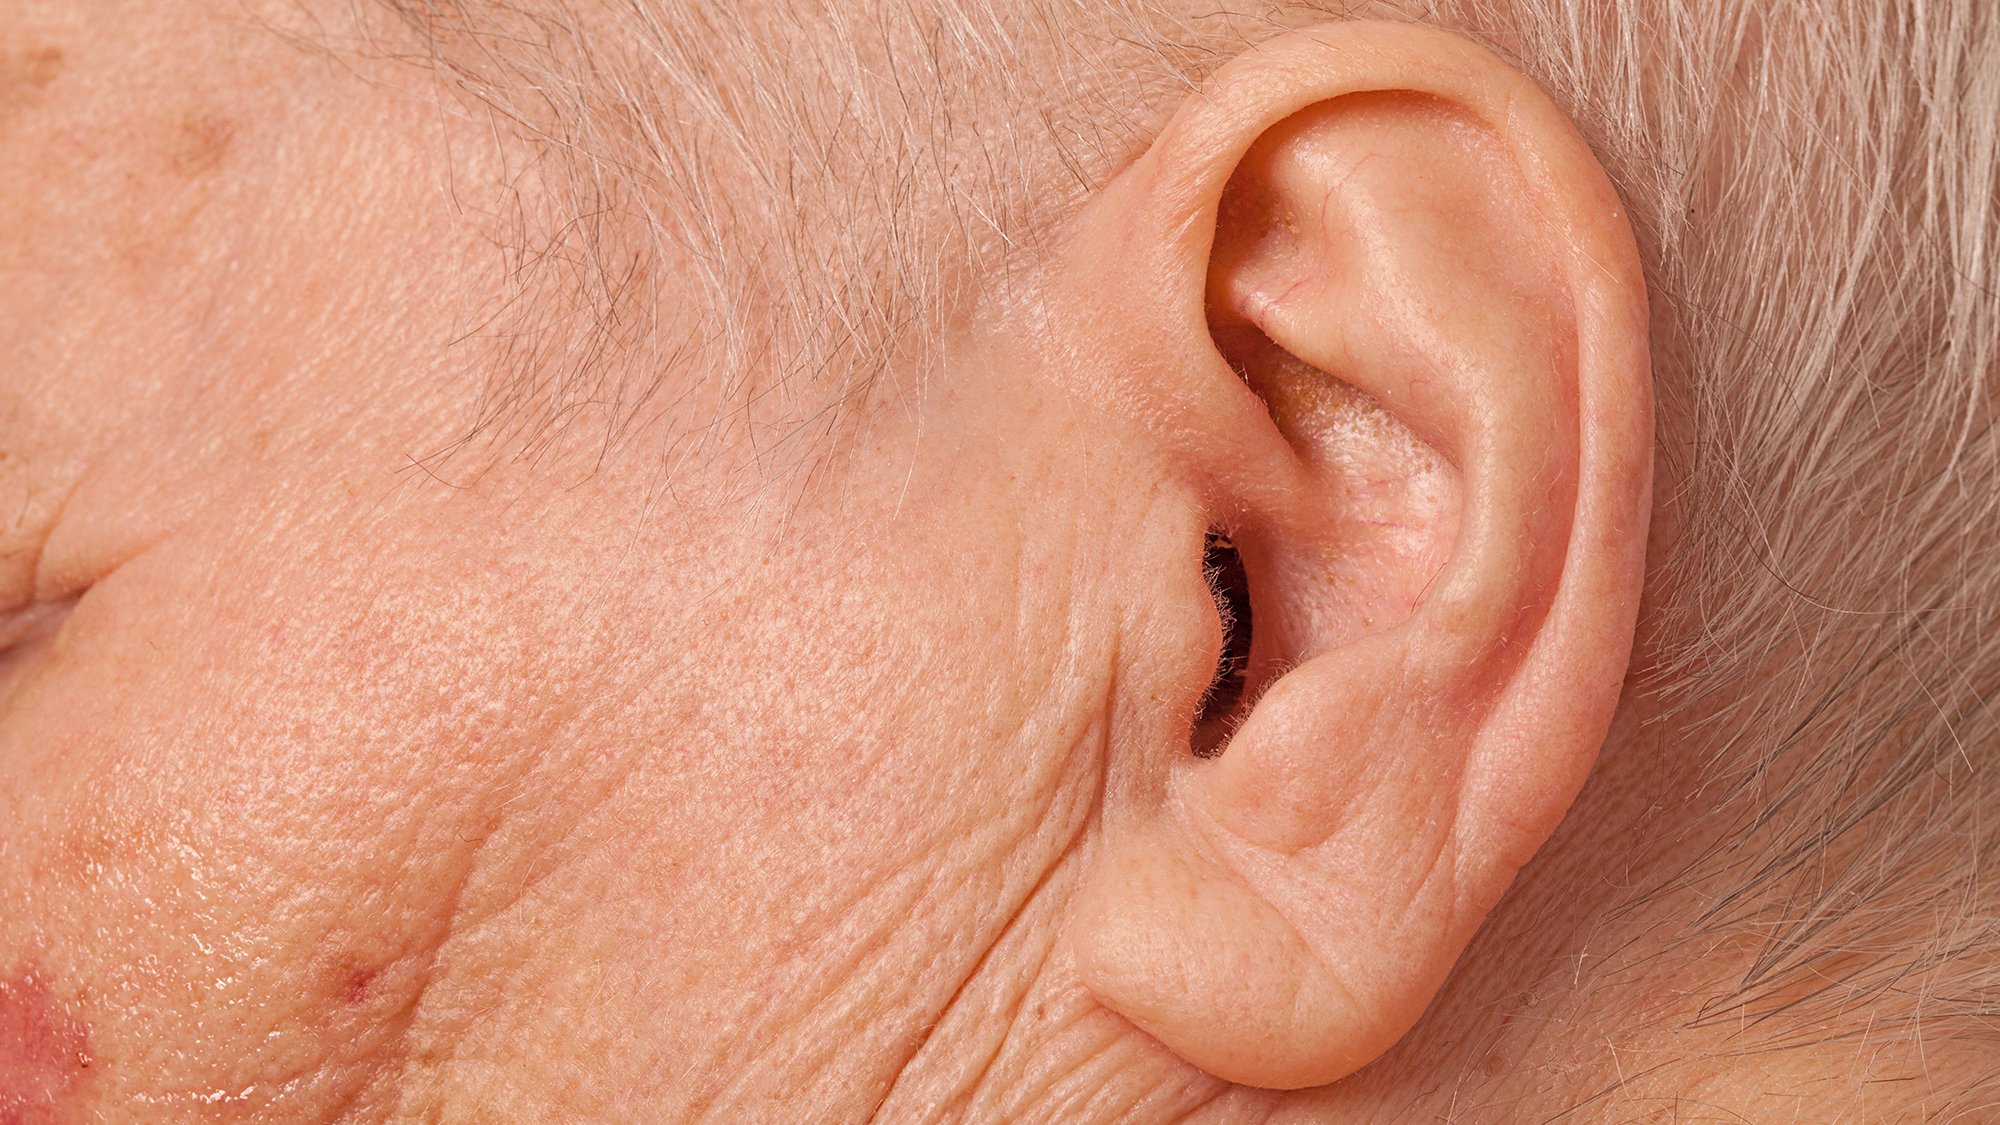 Gene therapy breakthrough for treatment of hearing loss